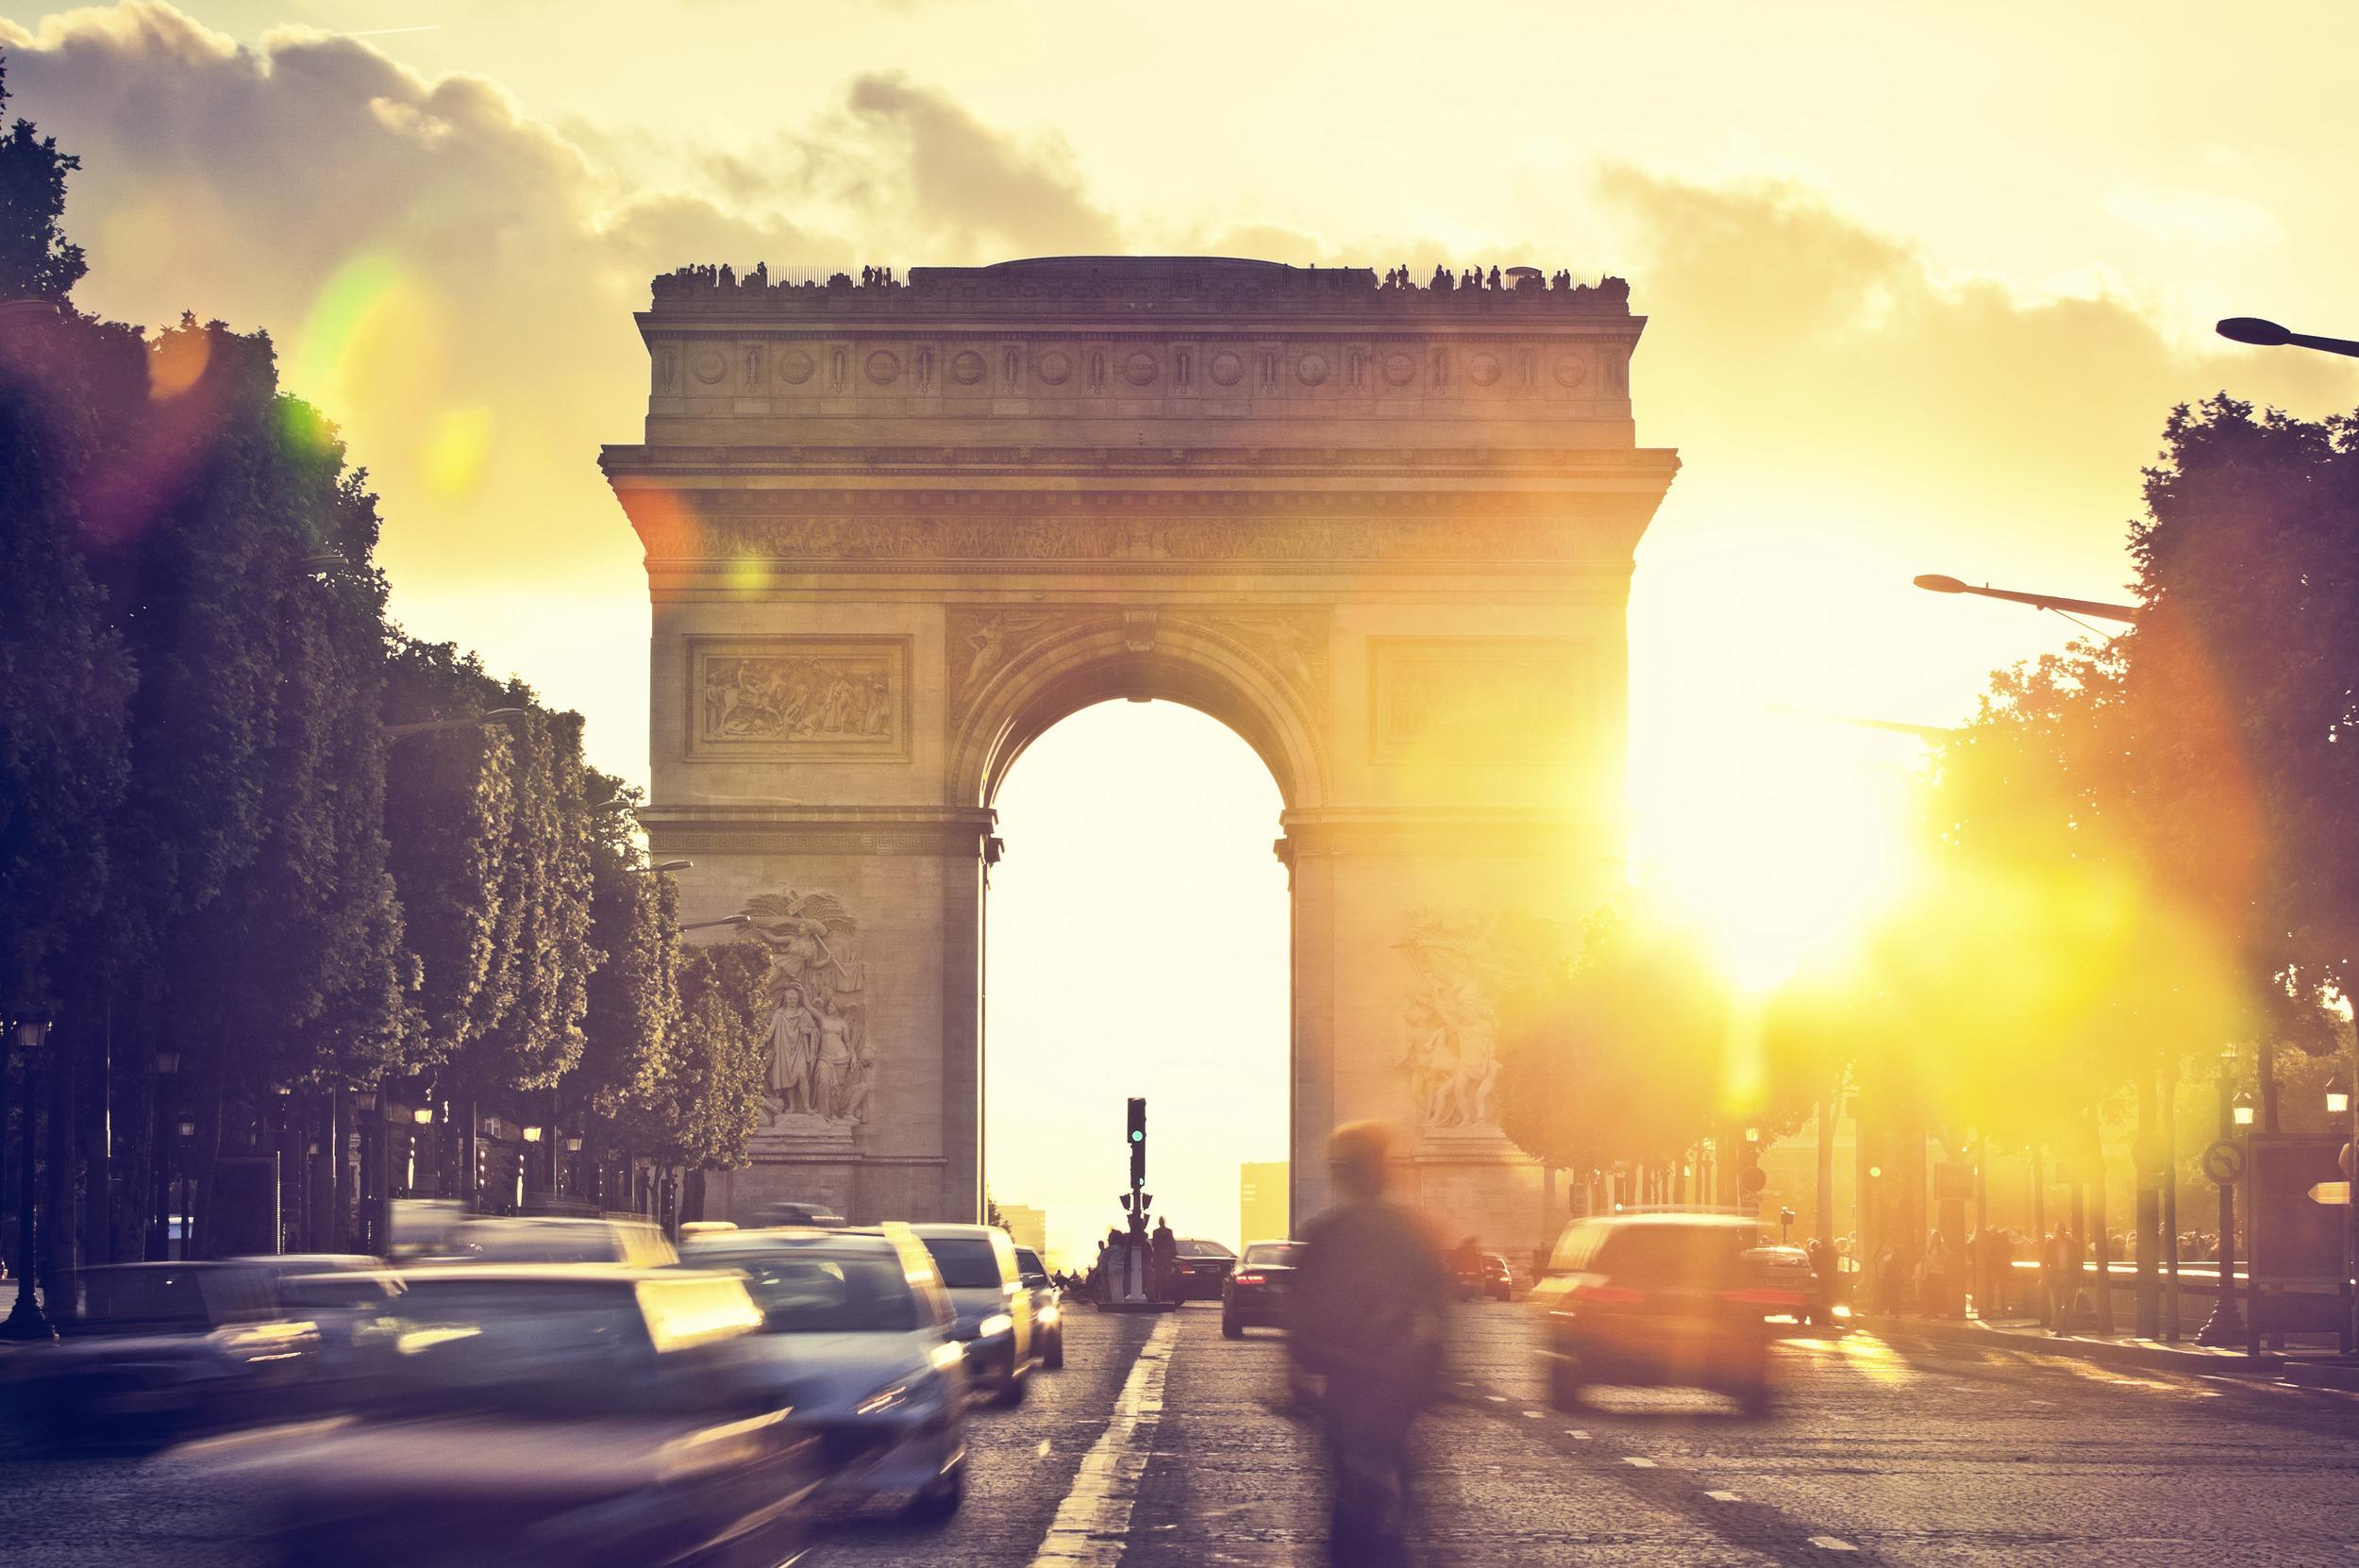 """<p><span style=""""font-family:helvetica, arial;font-size:16px;background-color:rgb(255, 255, 255);"""">Paris has a romantic ambiance that effortlessly draws couples from across the world to the city to experience its magic. The food is sumptuous, the art collections superb, the wine impeccable, and the city as a whole unforgettable. The city's charms seem endless, and for many lovers worldwide, there is no place better to come to celebrate romance than Paris.</span></p>  <p></p>"""